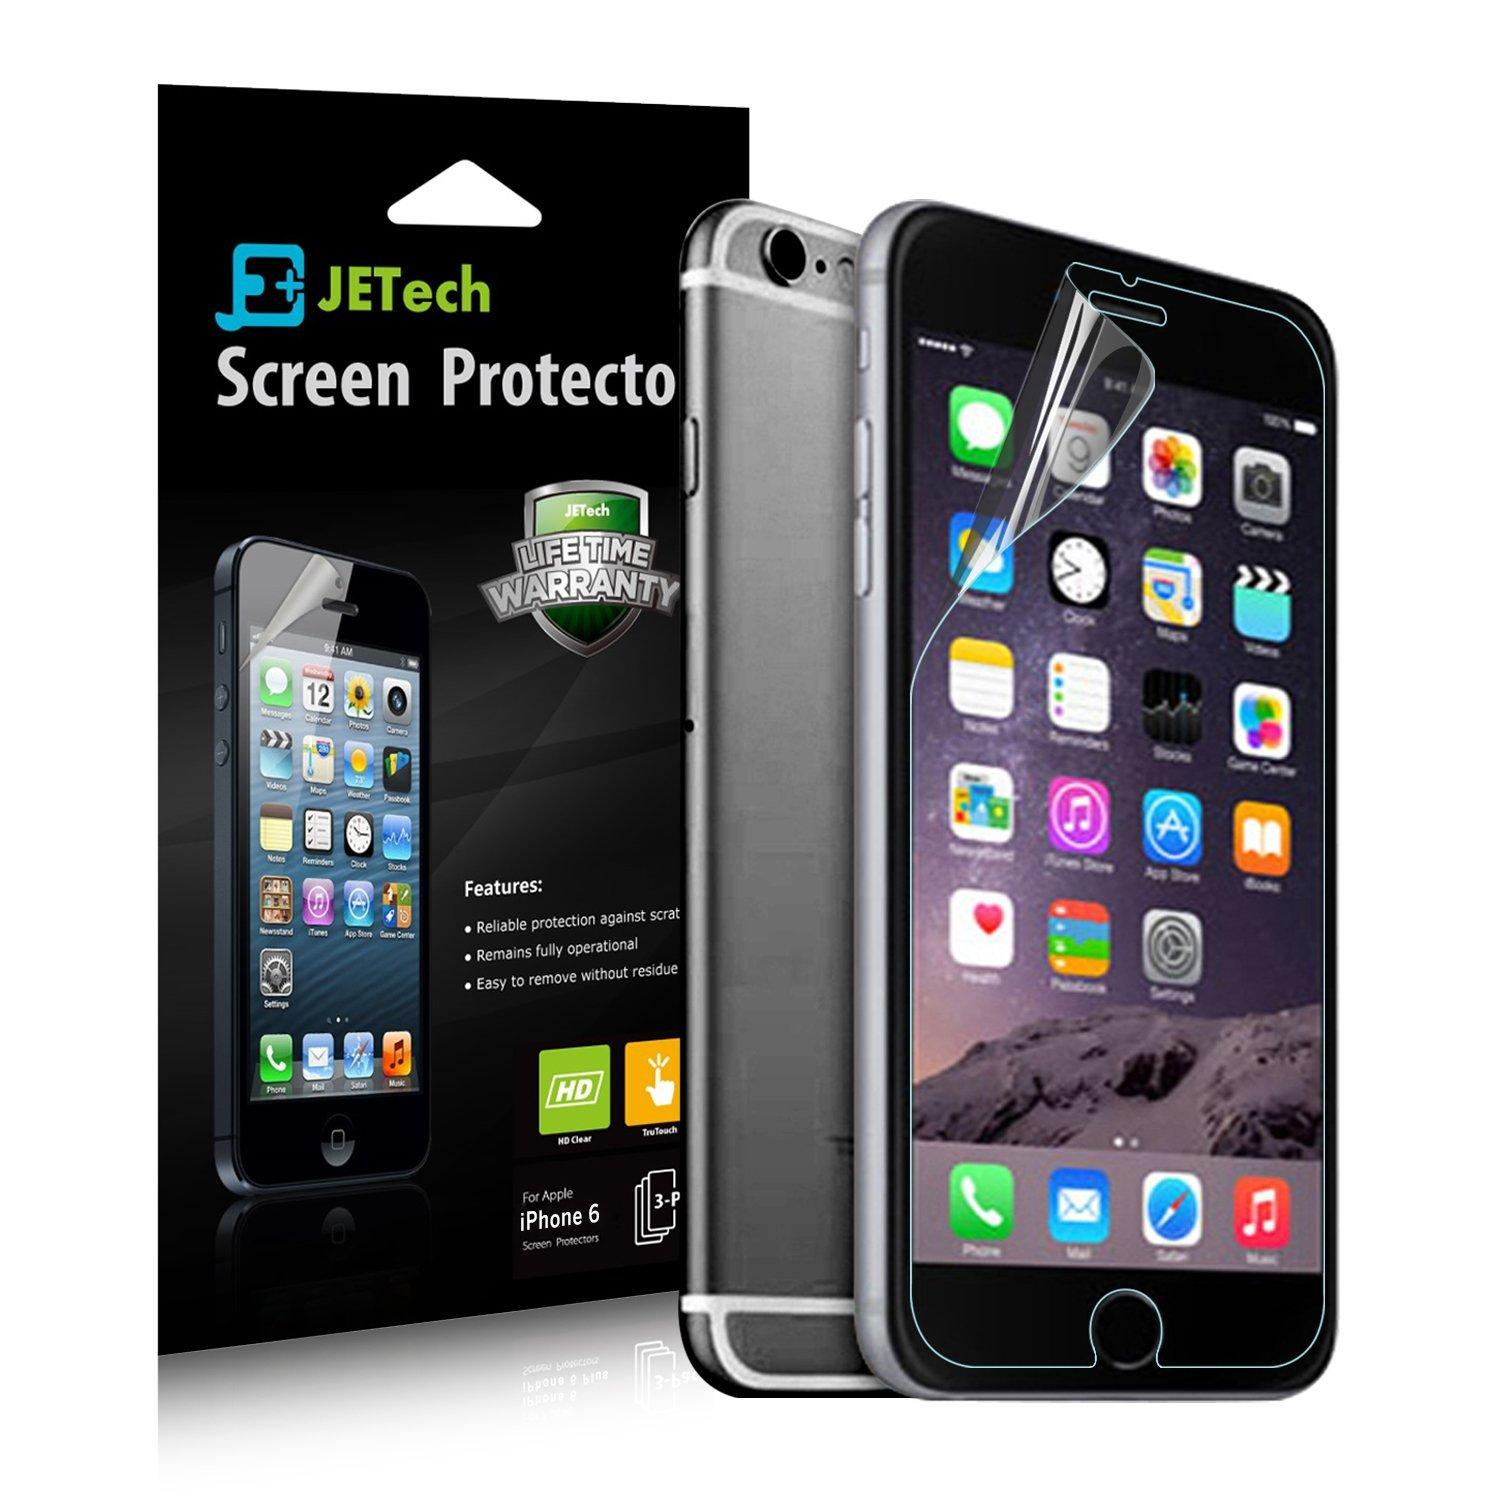 FREE iPhone 6/ 6 Plus Screen Protector